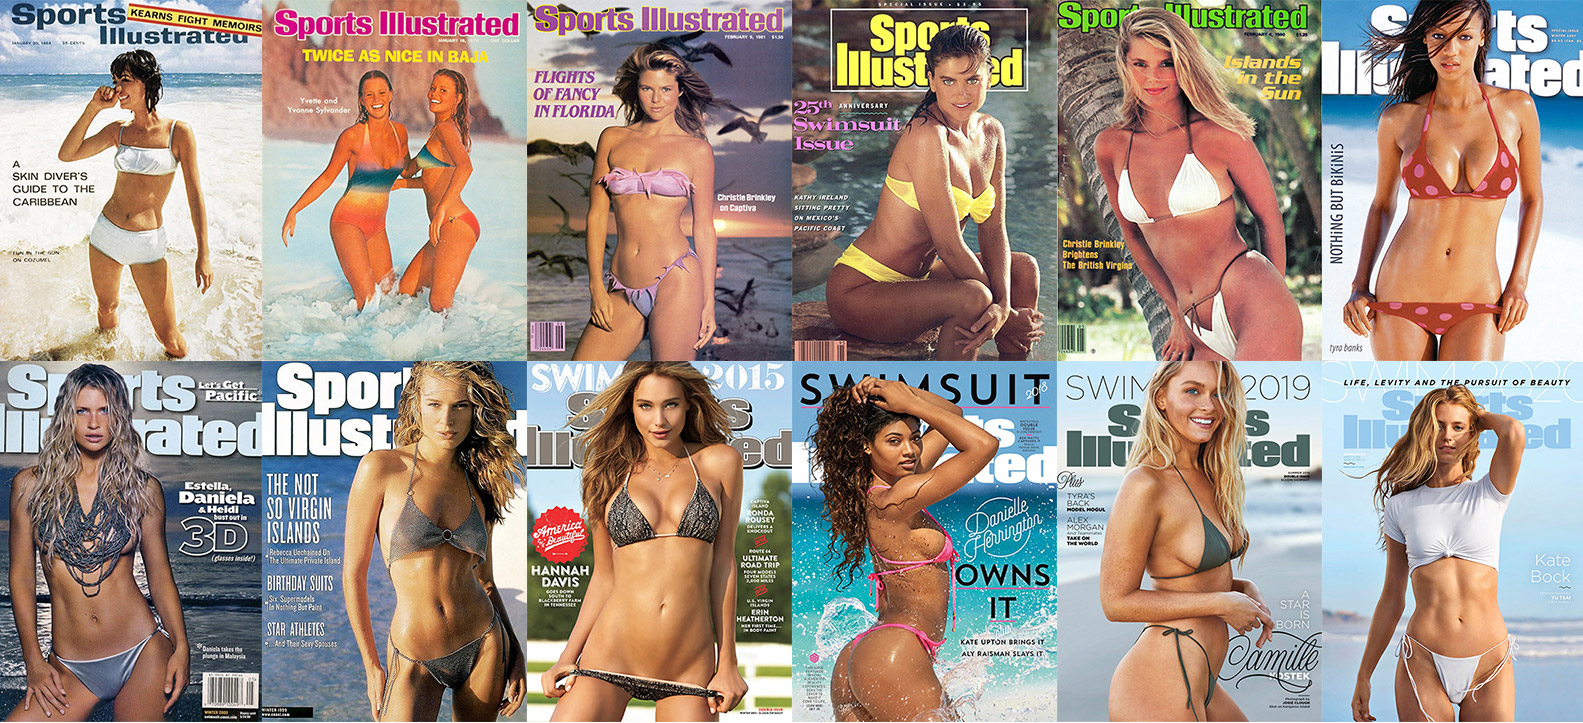 Celebrating Sports Illustrated's Swimsuit Edition